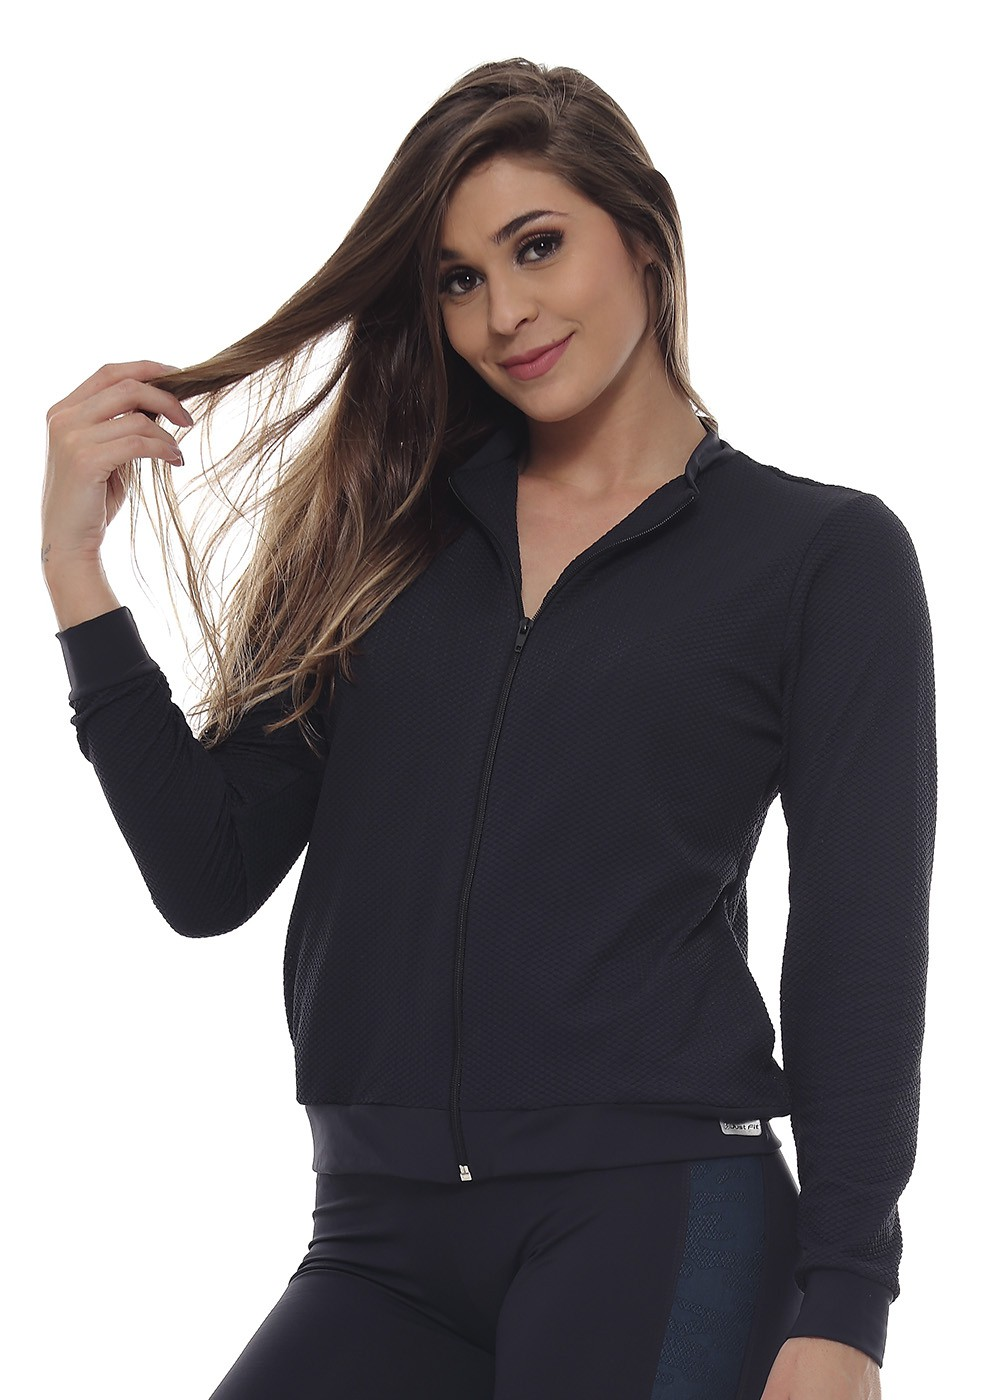 JAQUETA FASHION FEMININA JUST FIT - PRETO TULIPA